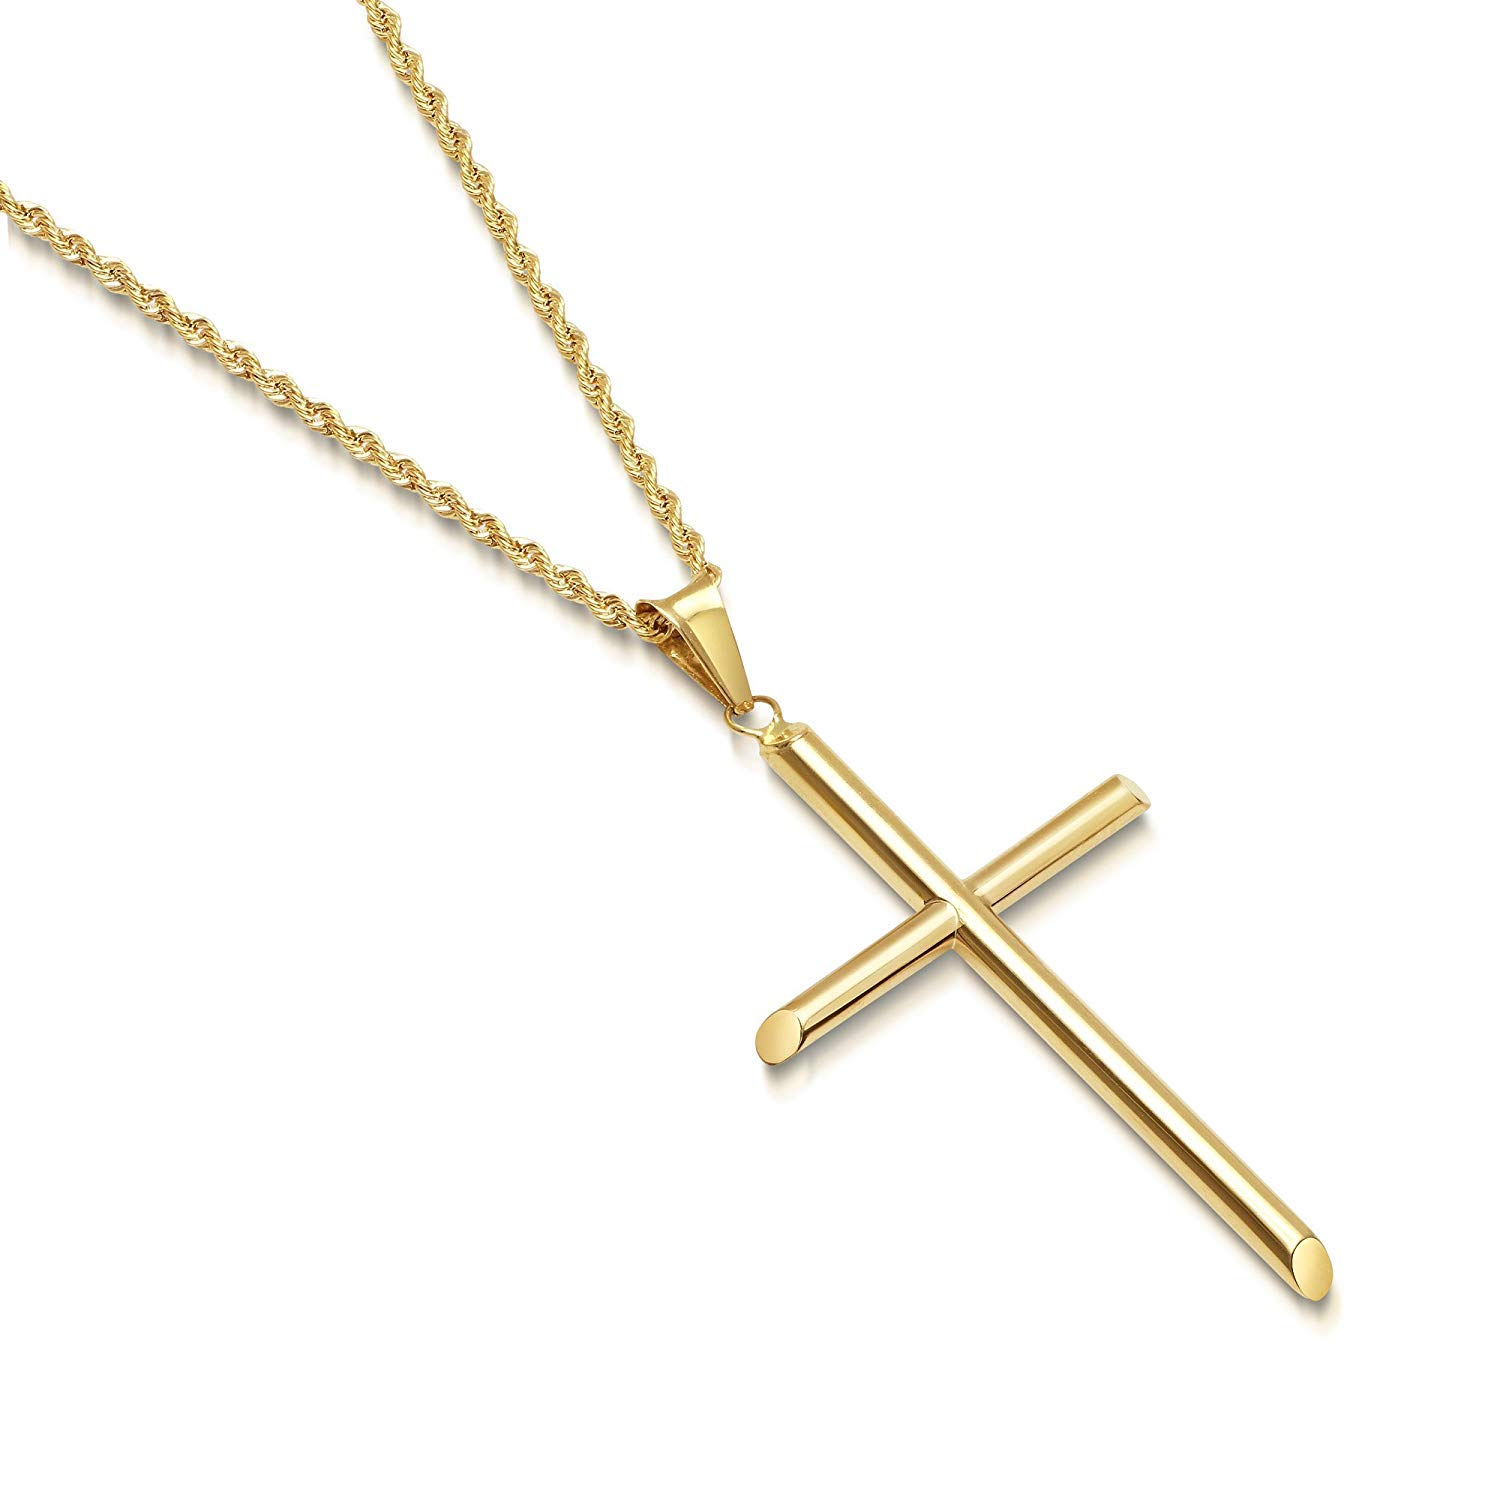 14K Gold Rope Chain Style Cross Pendant Necklace Solid Clasp for Men,Women,Teens Thin for Charms Miami Cuban Link Diamond Cut 24'' (22.0)